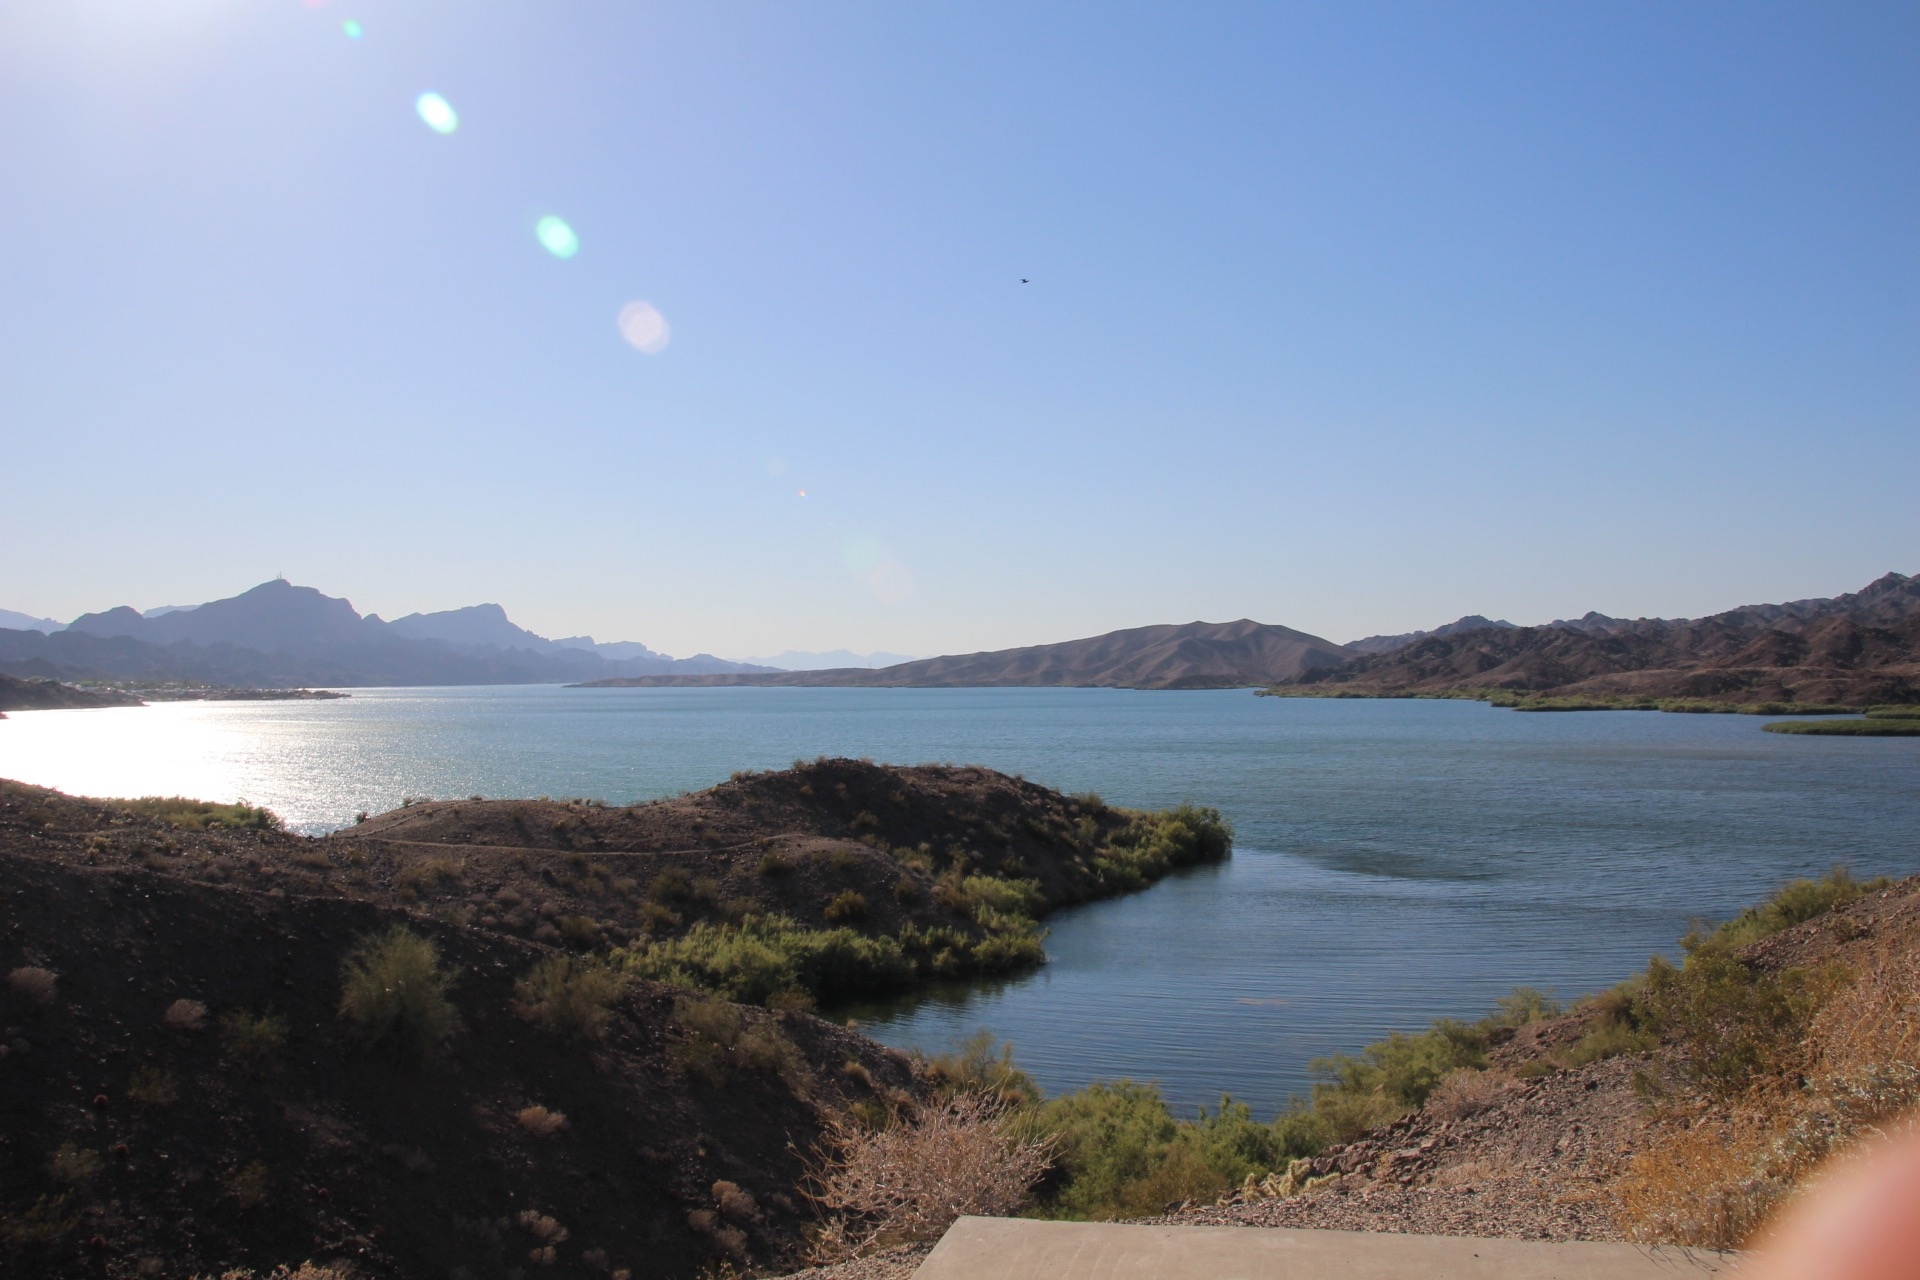 Tripps Travel Network Reviews Lake Havasu AZ (1)